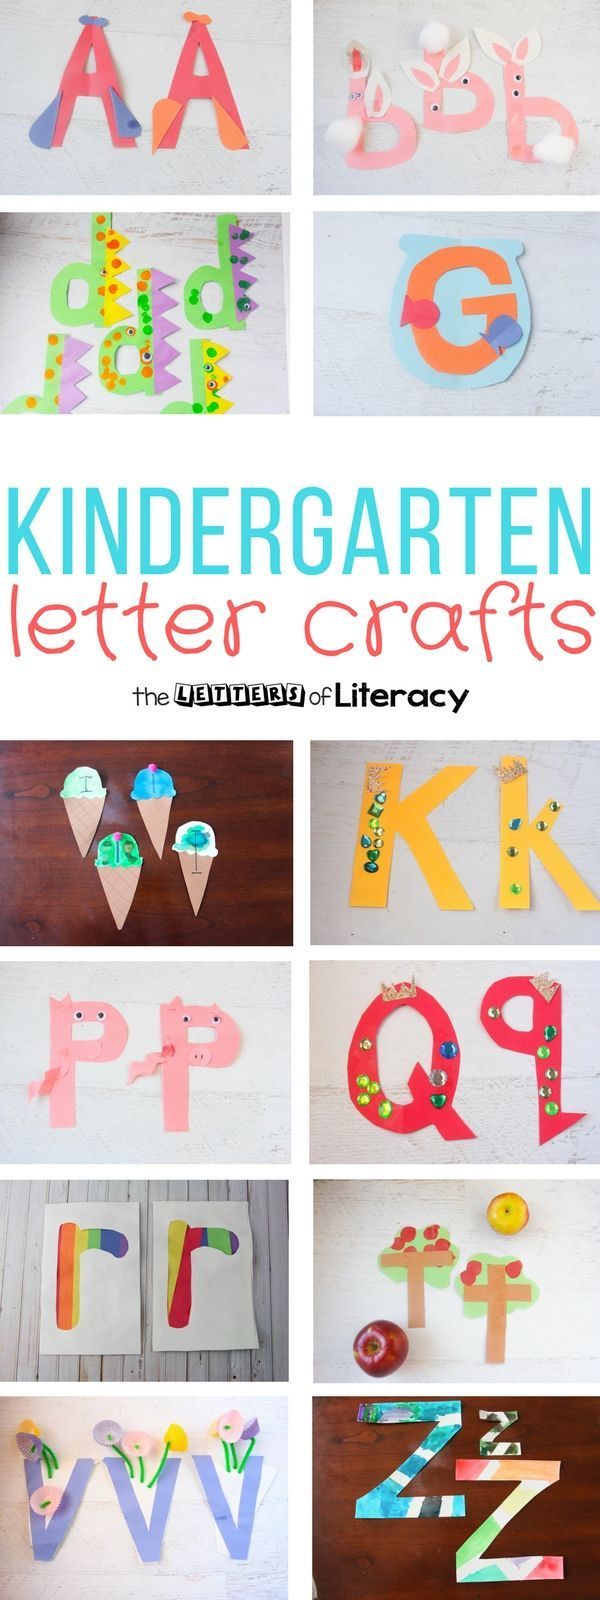 Celebrate the alphabet with these quick and easy Kindergarten letter crafts! They are perfect for Preschoolers and Kindergartners learning their ABC's.